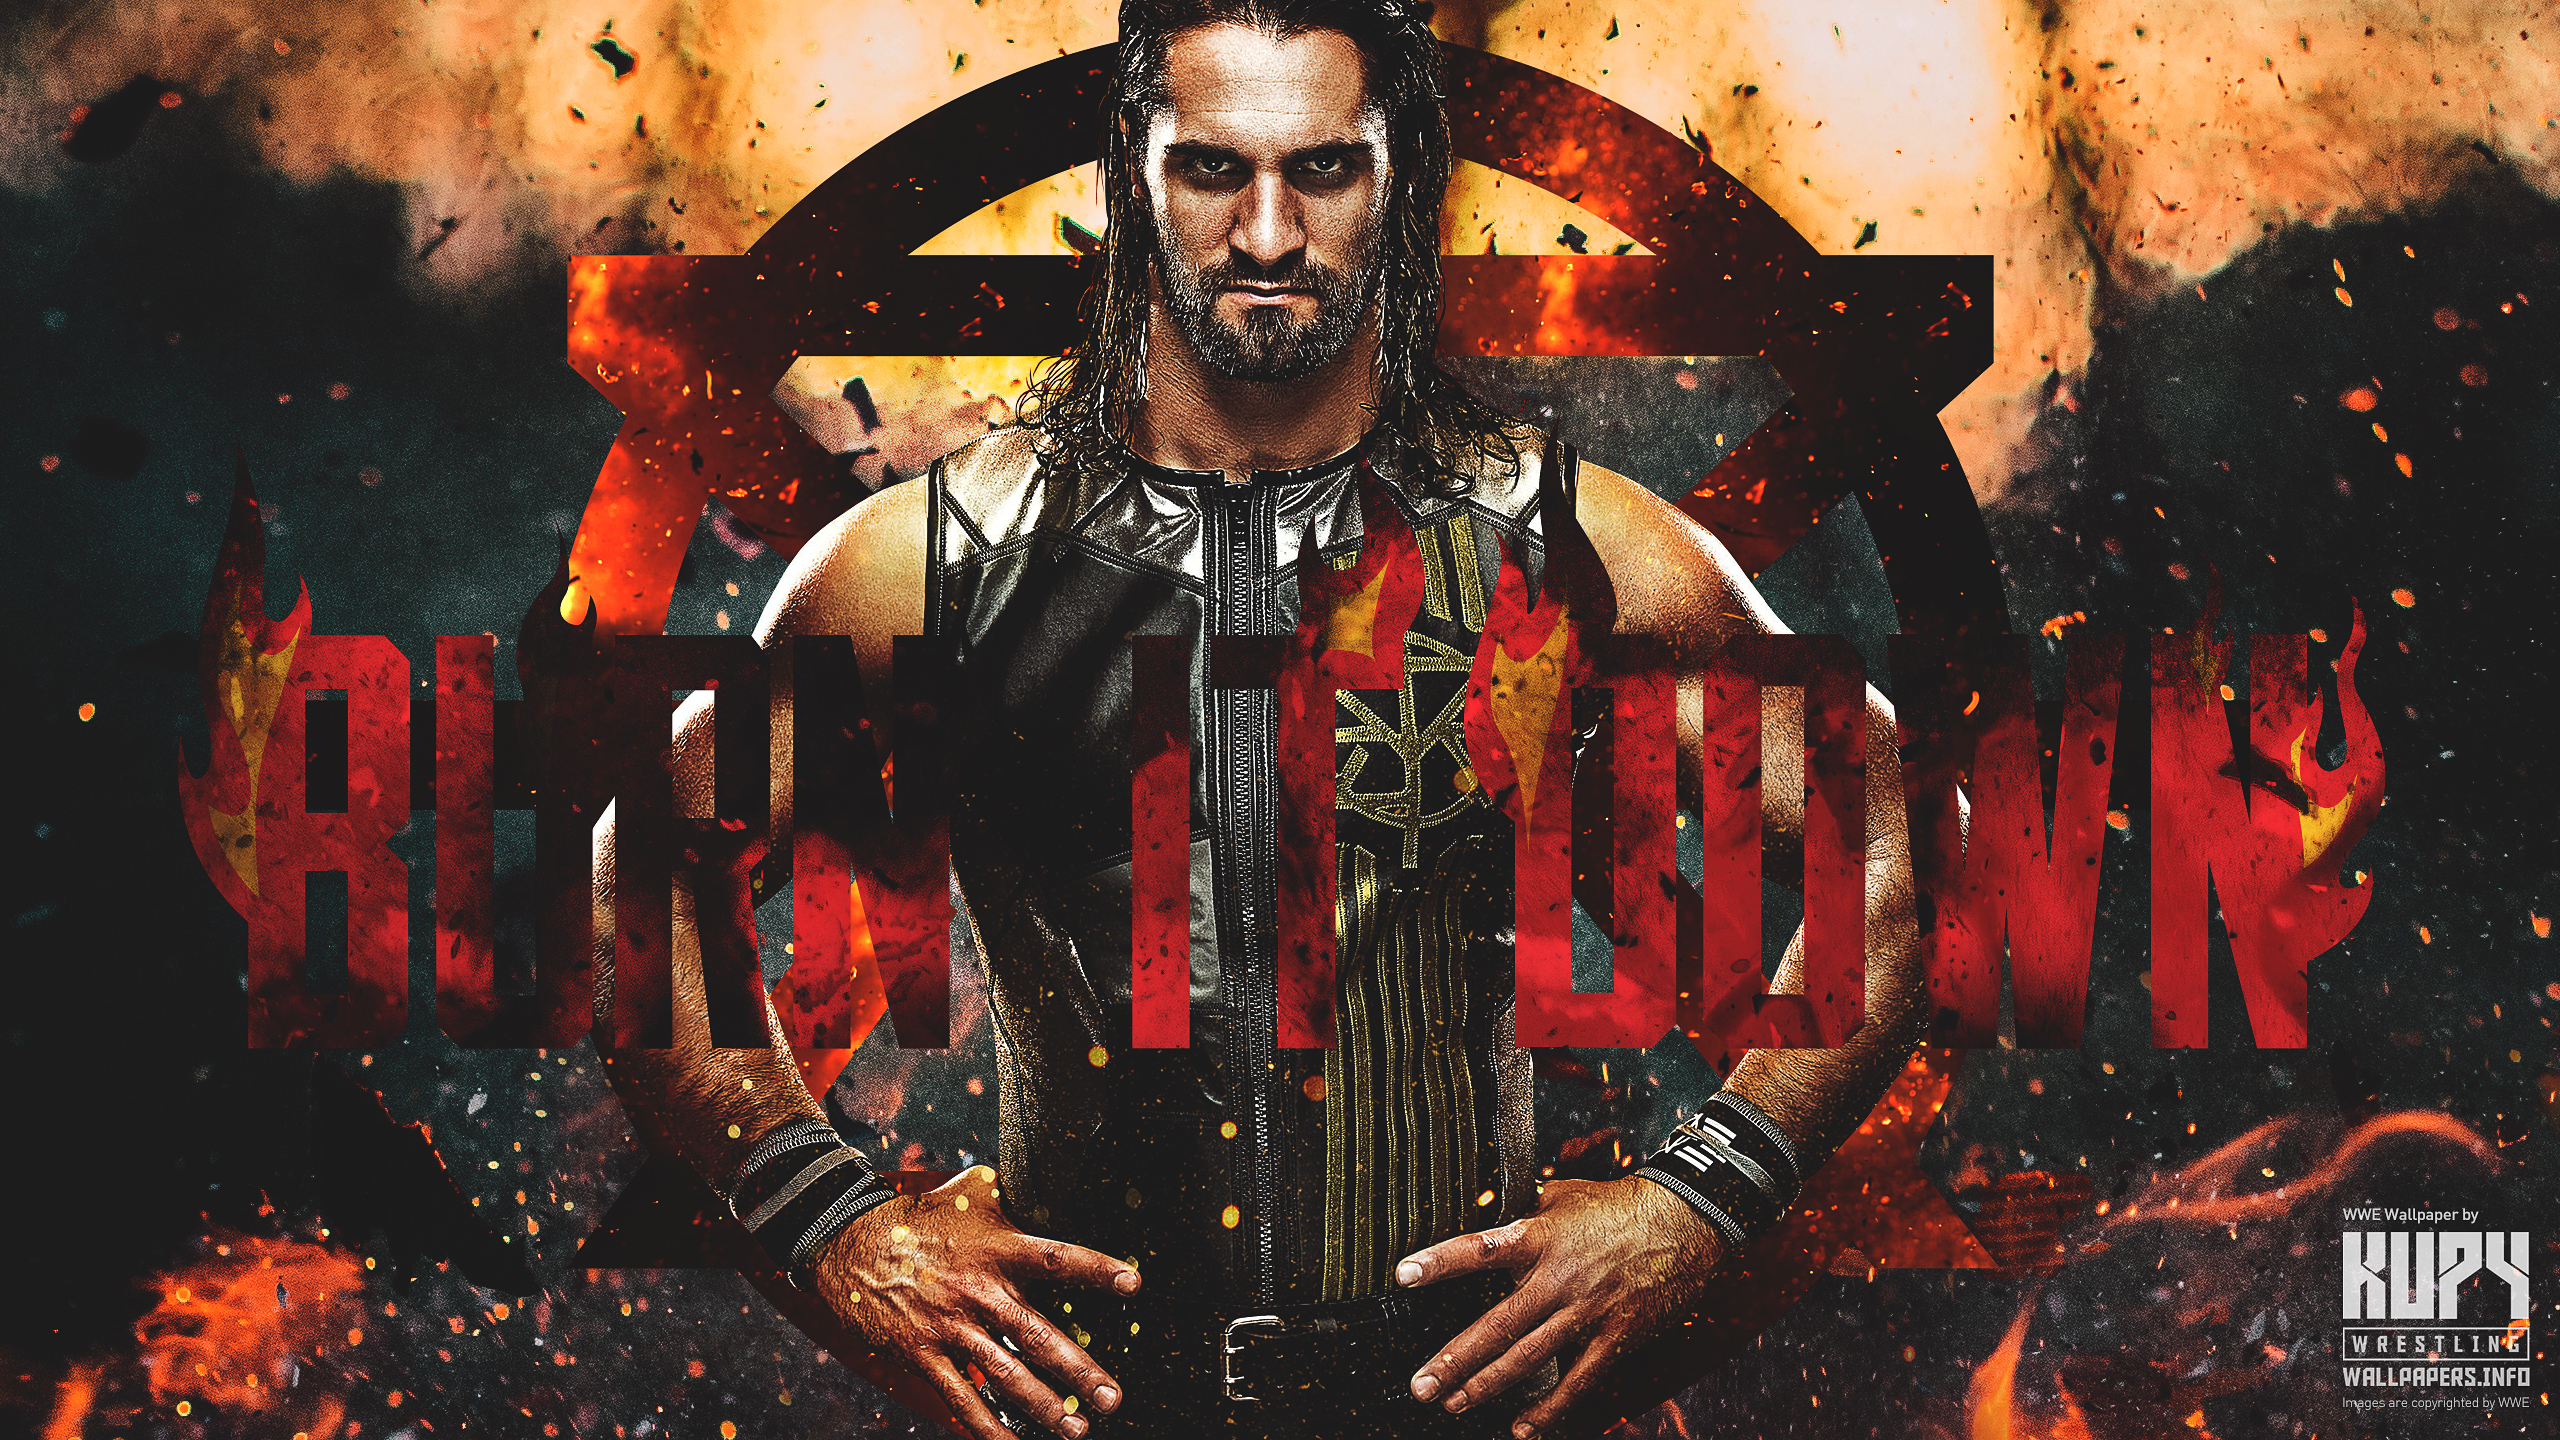 kupywrestlingwallpapers – the newest wrestling wallpapers on